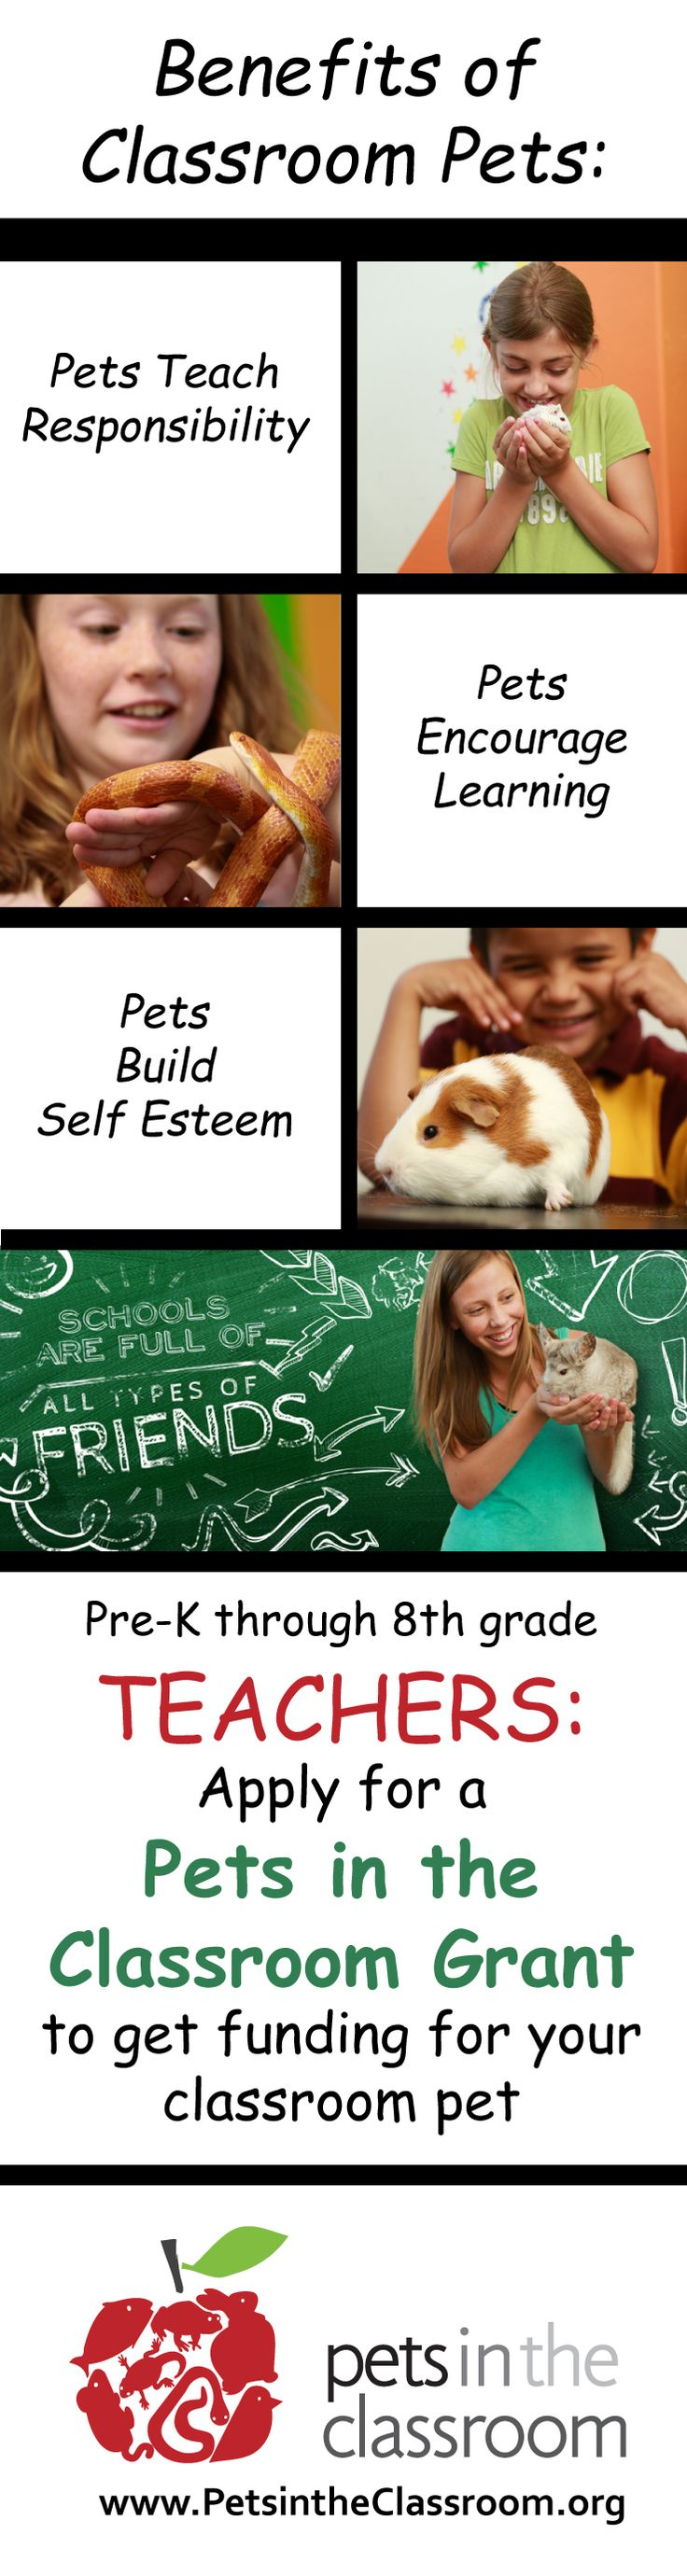 "This is awesome! ""There are numerous benefits to classroom pets. They bring many new ways to learn, enrich the classroom experience, and can make students excited for school. Plus they do so much more! Learn more about the benefits of classroom pets and how you can get a grant to have your own pet in the classroom!"" #classroompet #teachergrant #teachers"